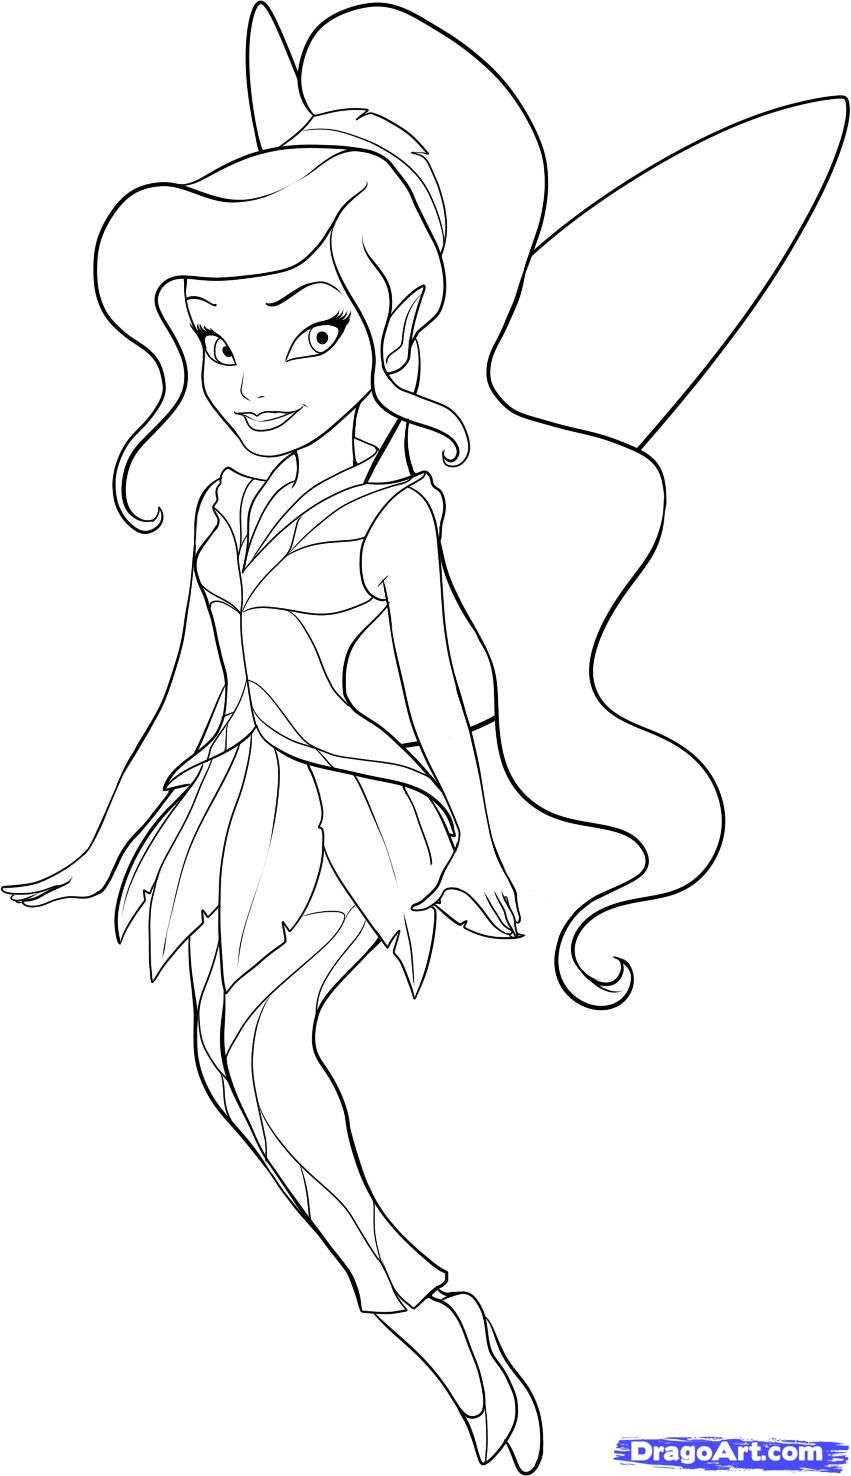 vidia fairy coloringadult coloringcoloring pagescoloring booksdisney - Disney Fairy Vidia Coloring Pages